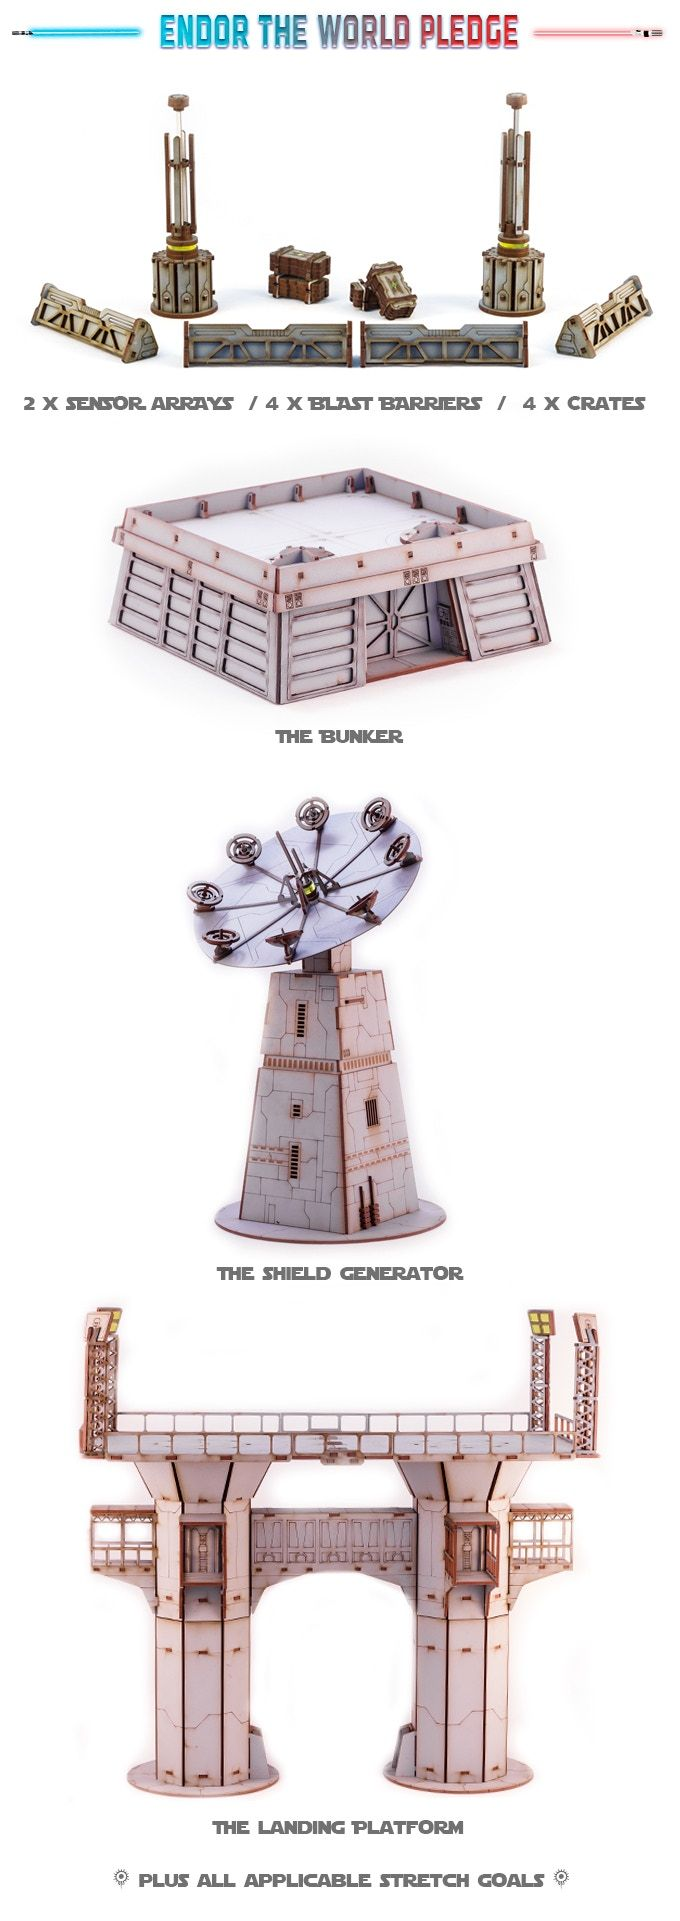 Bringing The Epic Feel Of Endor To Life On Your Tabletop Perfect For The Upcoming Star Wars Legion Miniat Star Wars Awesome Star Wars Diy Star Wars Spaceships